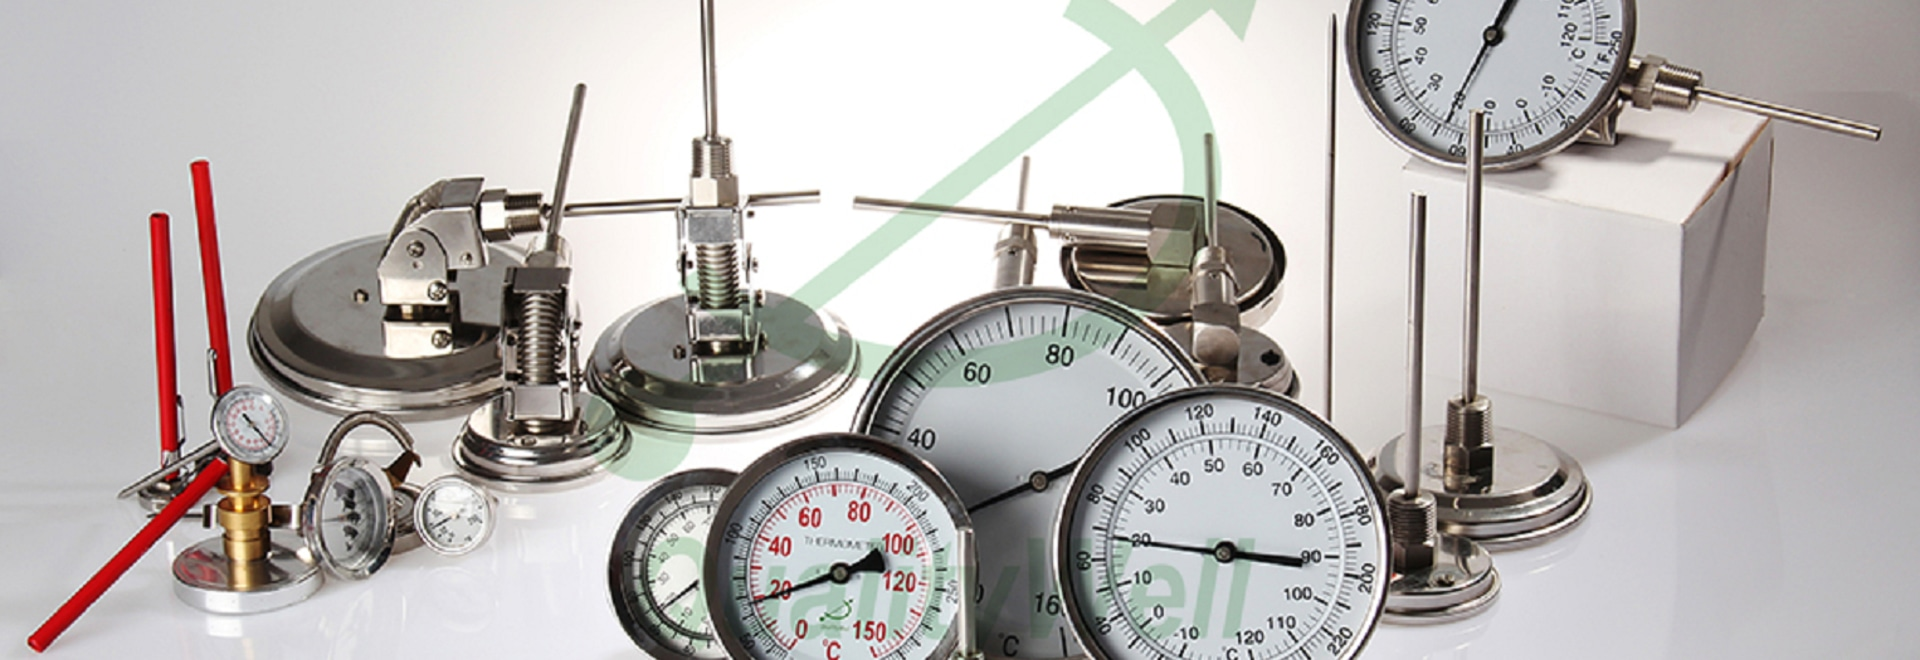 all kinds of bimetallic thermometers